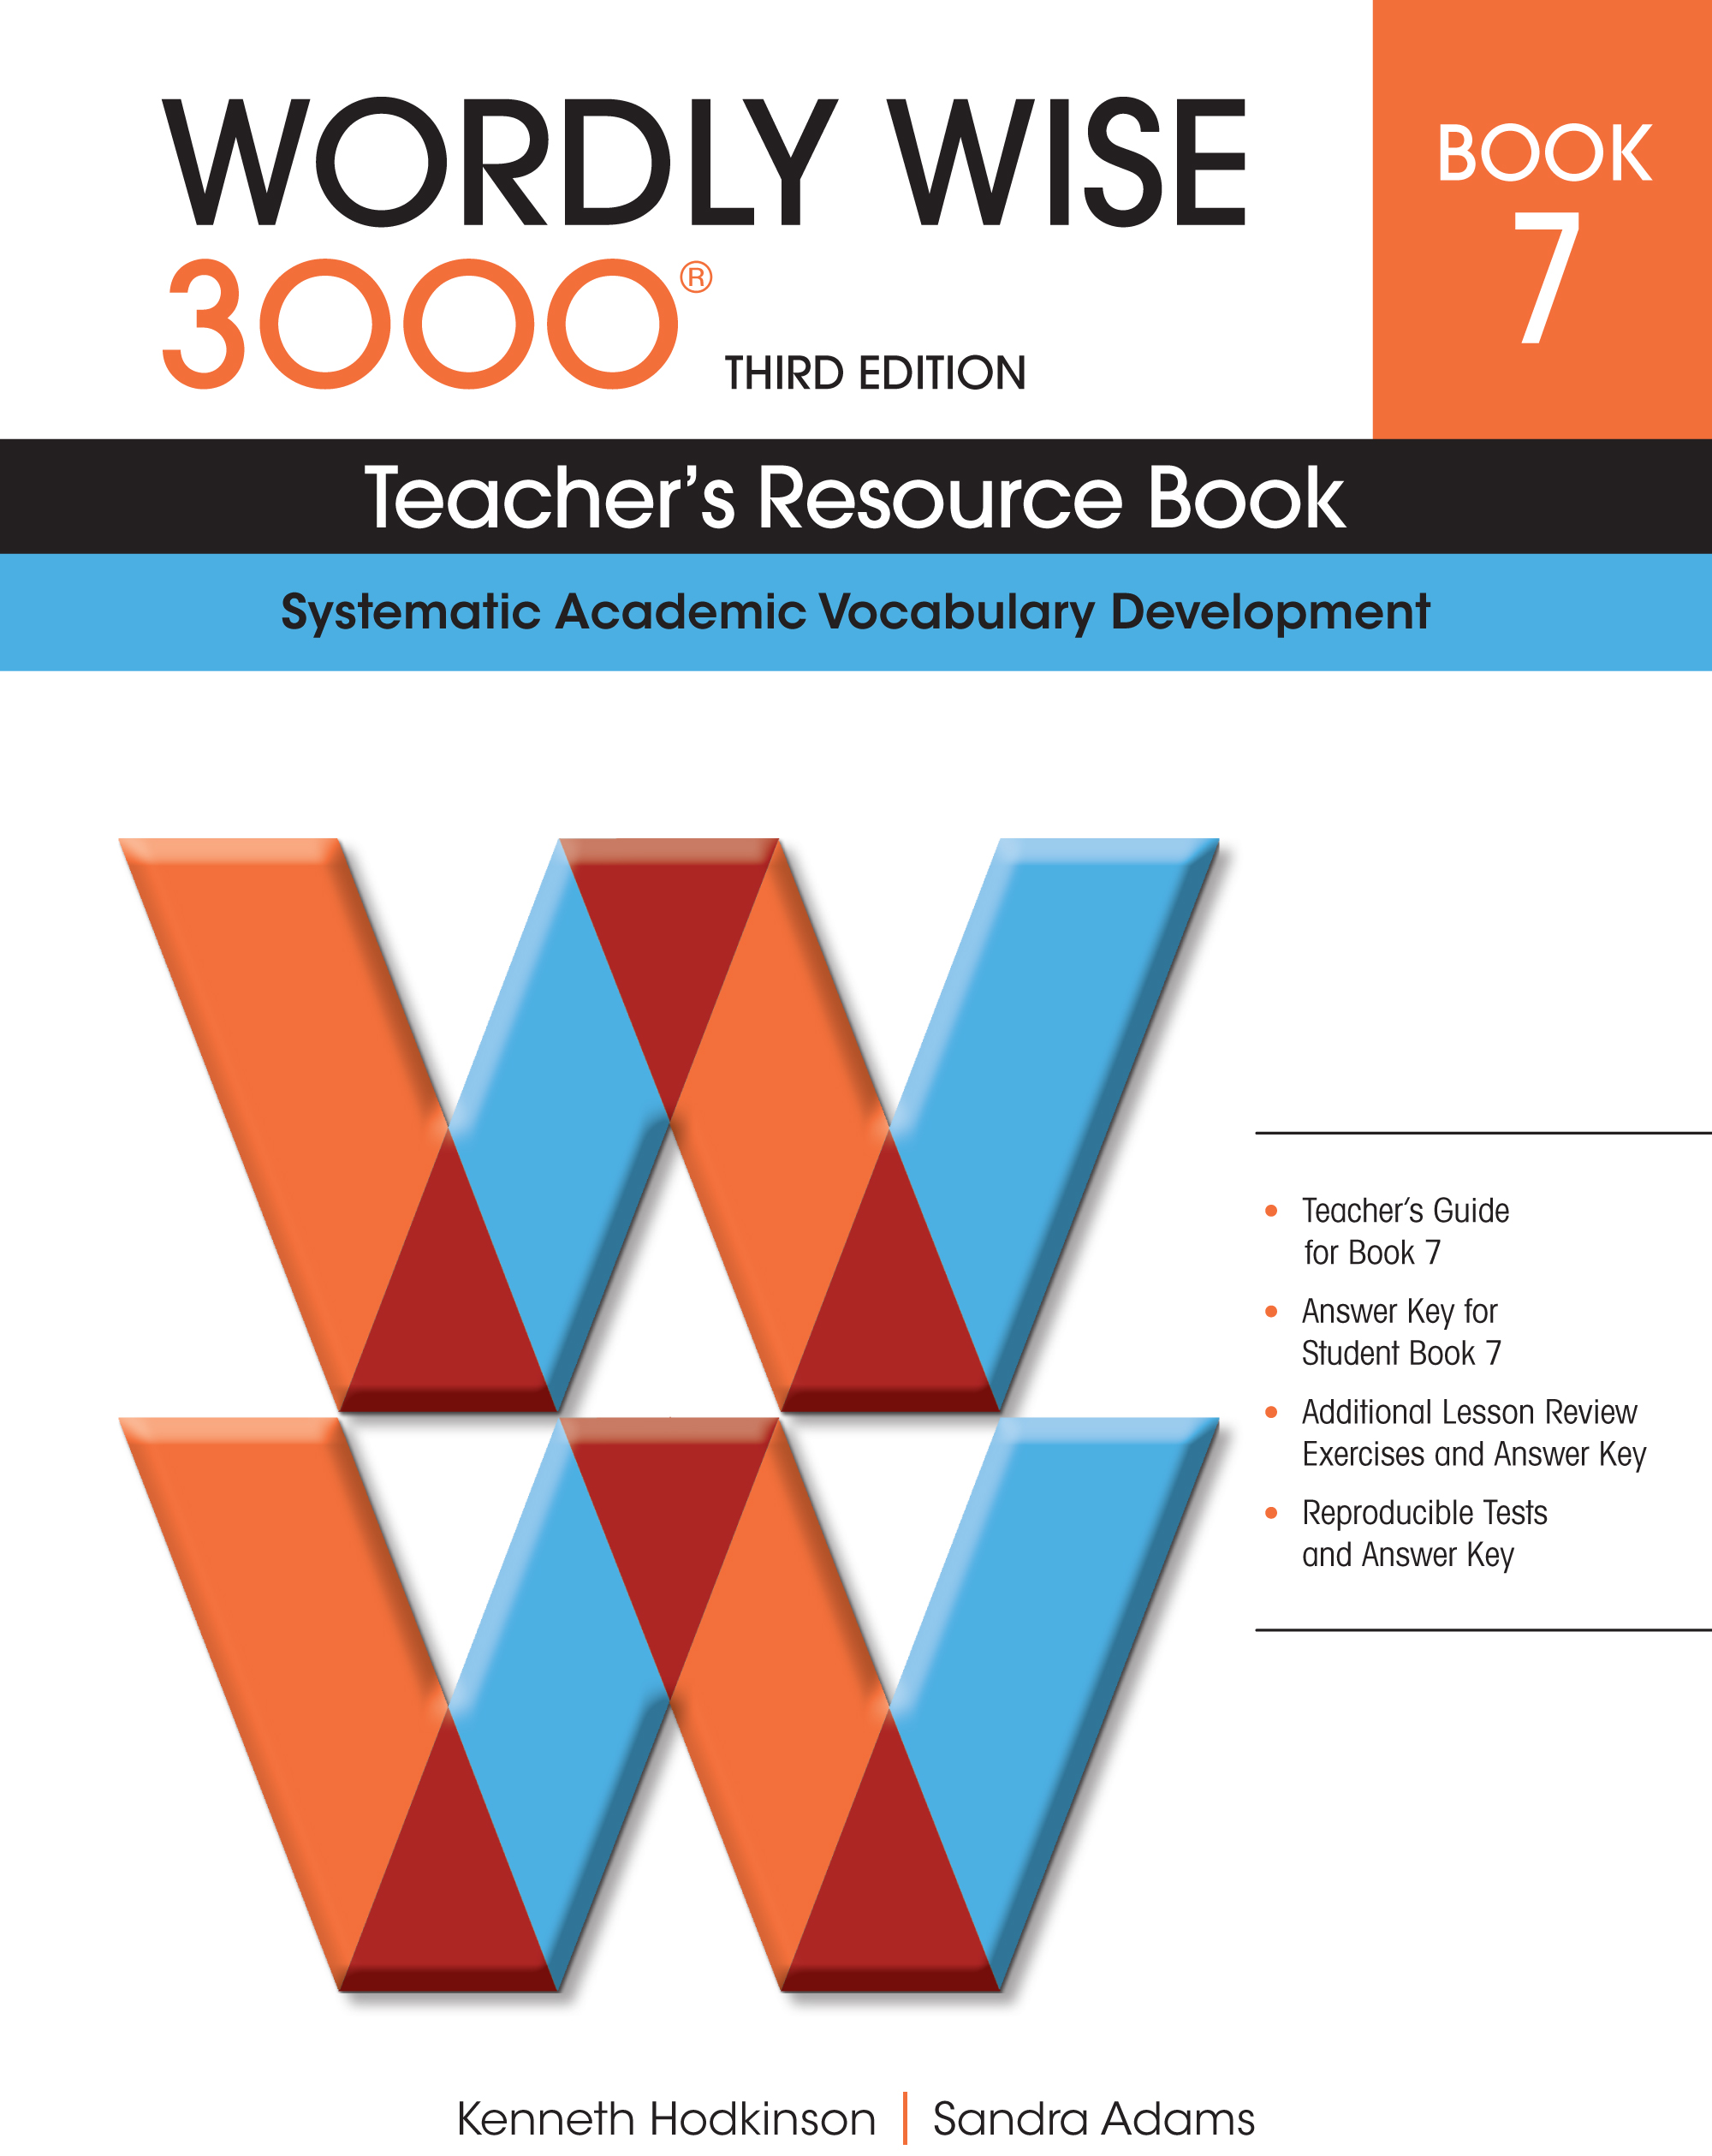 Wordly Wise 3000® 3rd Edition Teacher's Resource Book 7